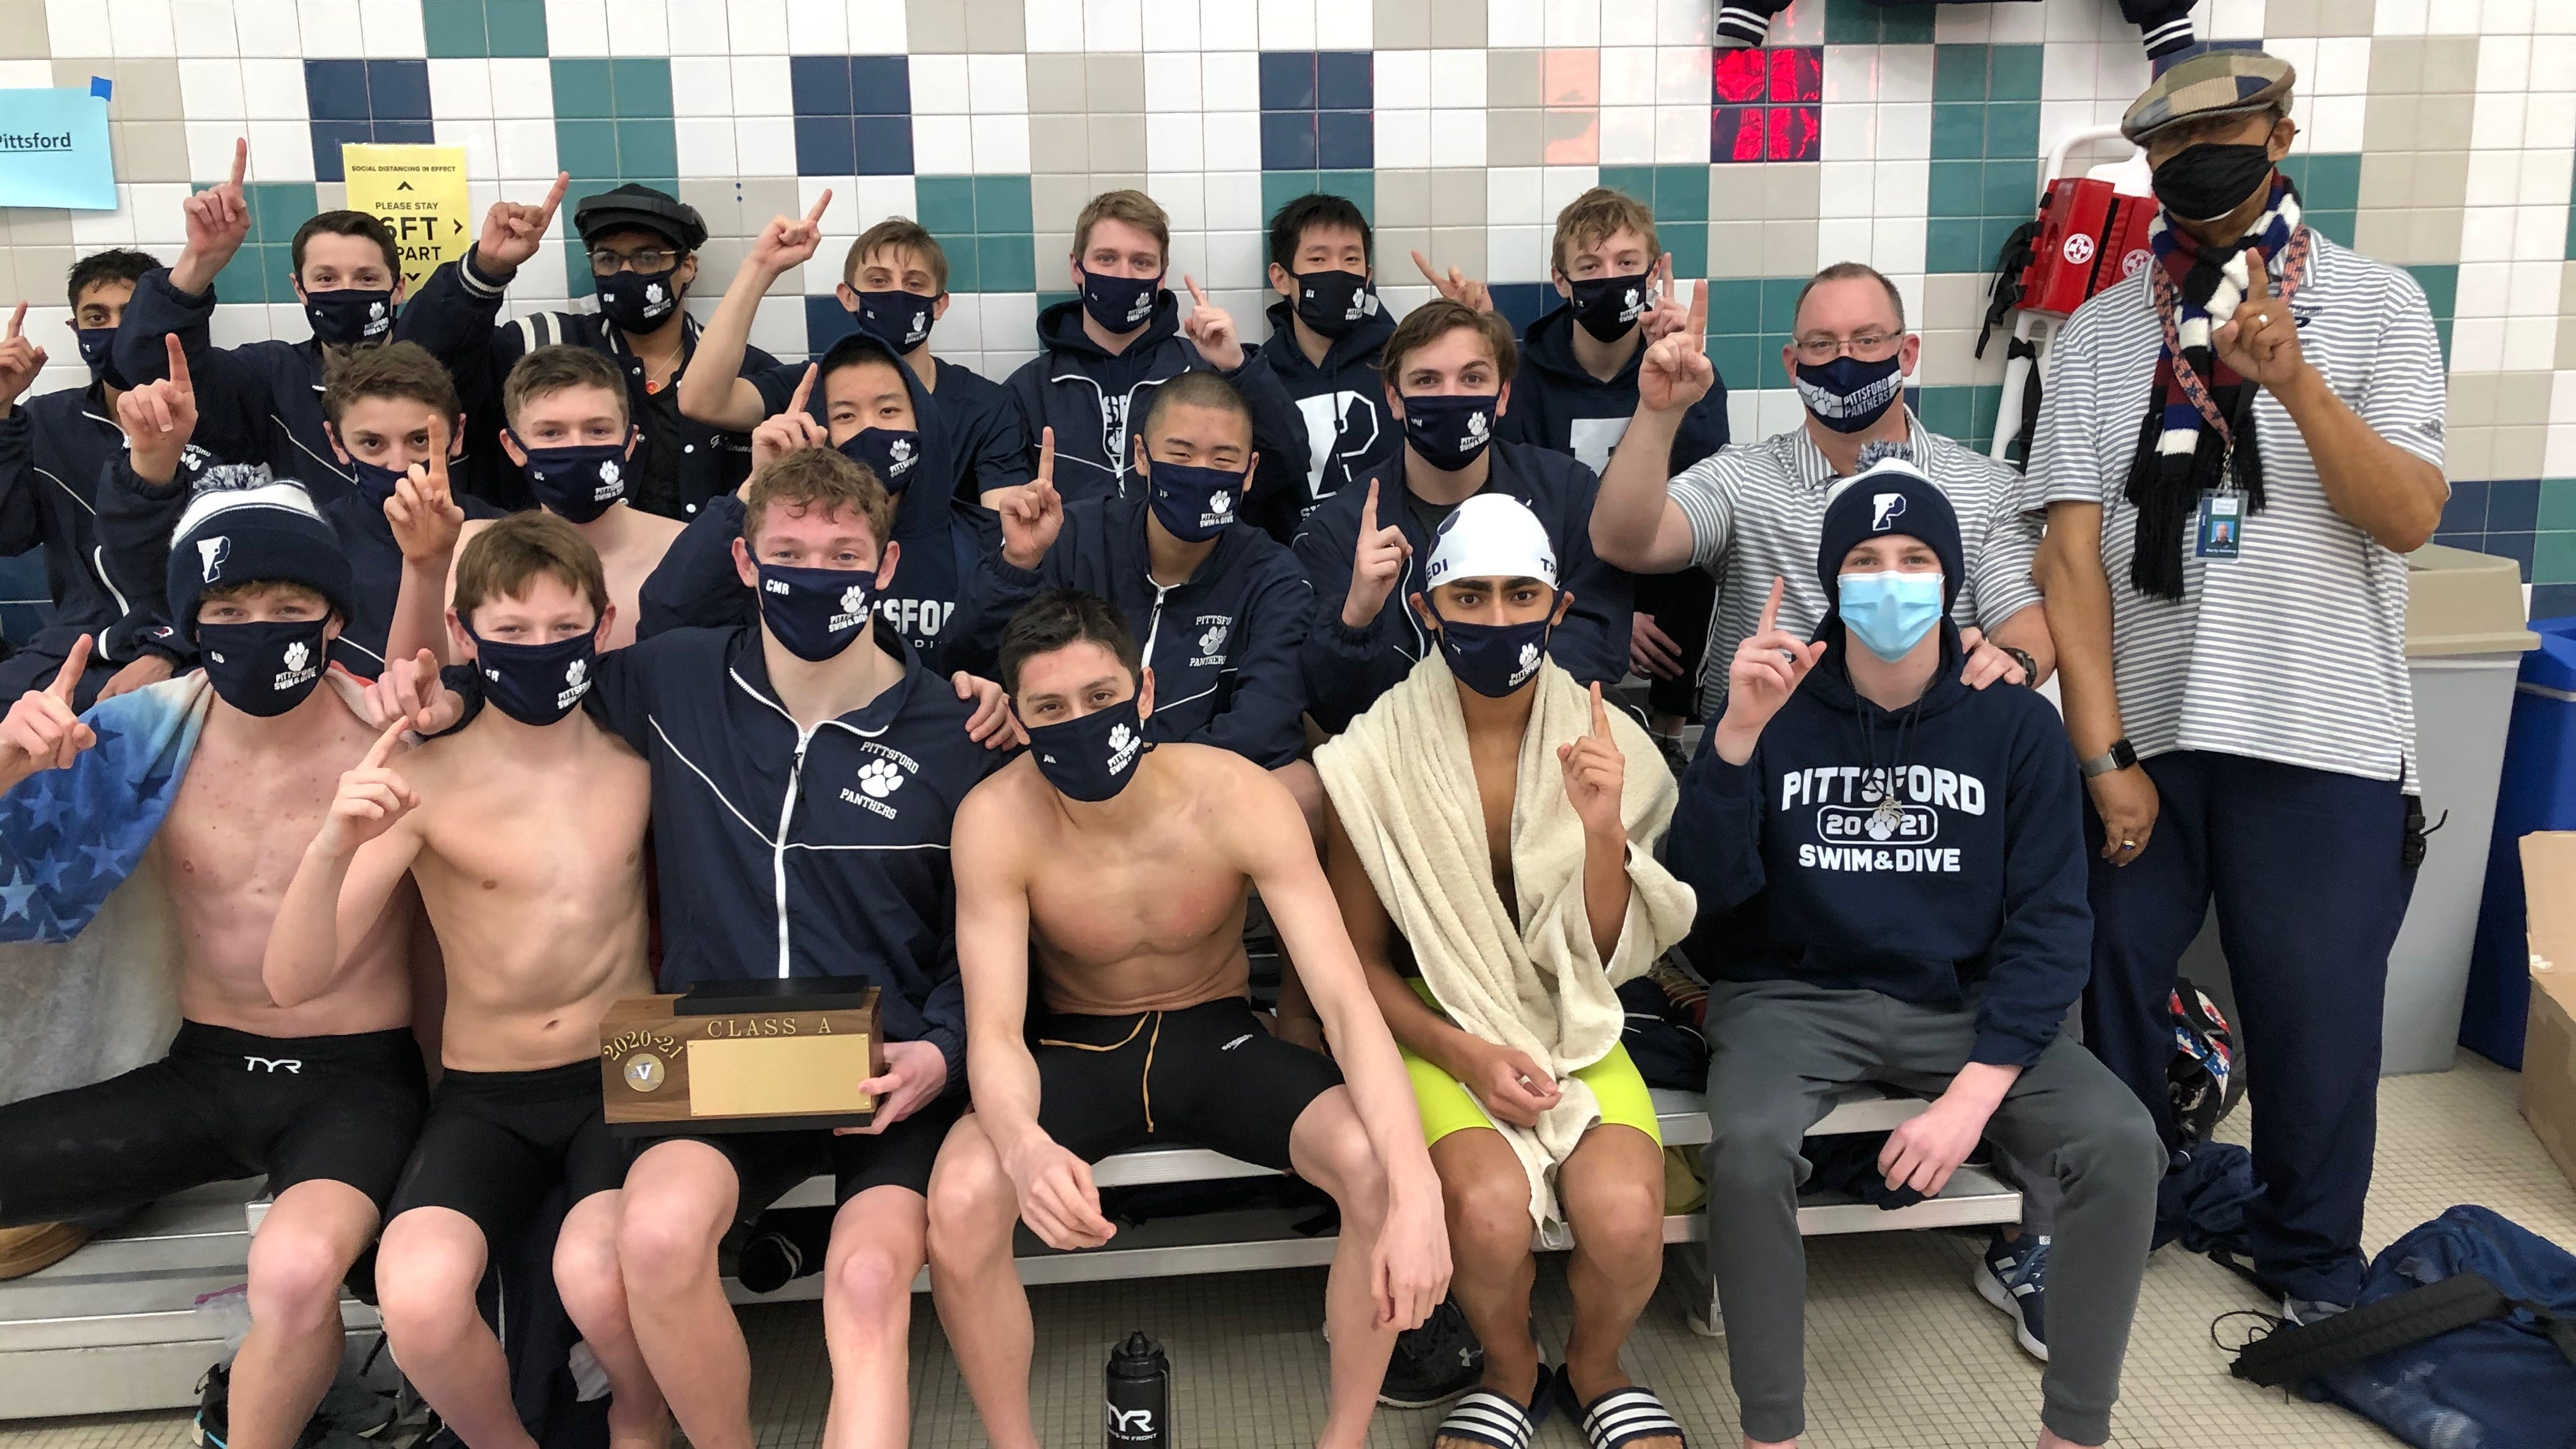 Pittsford swimming, diving net title win